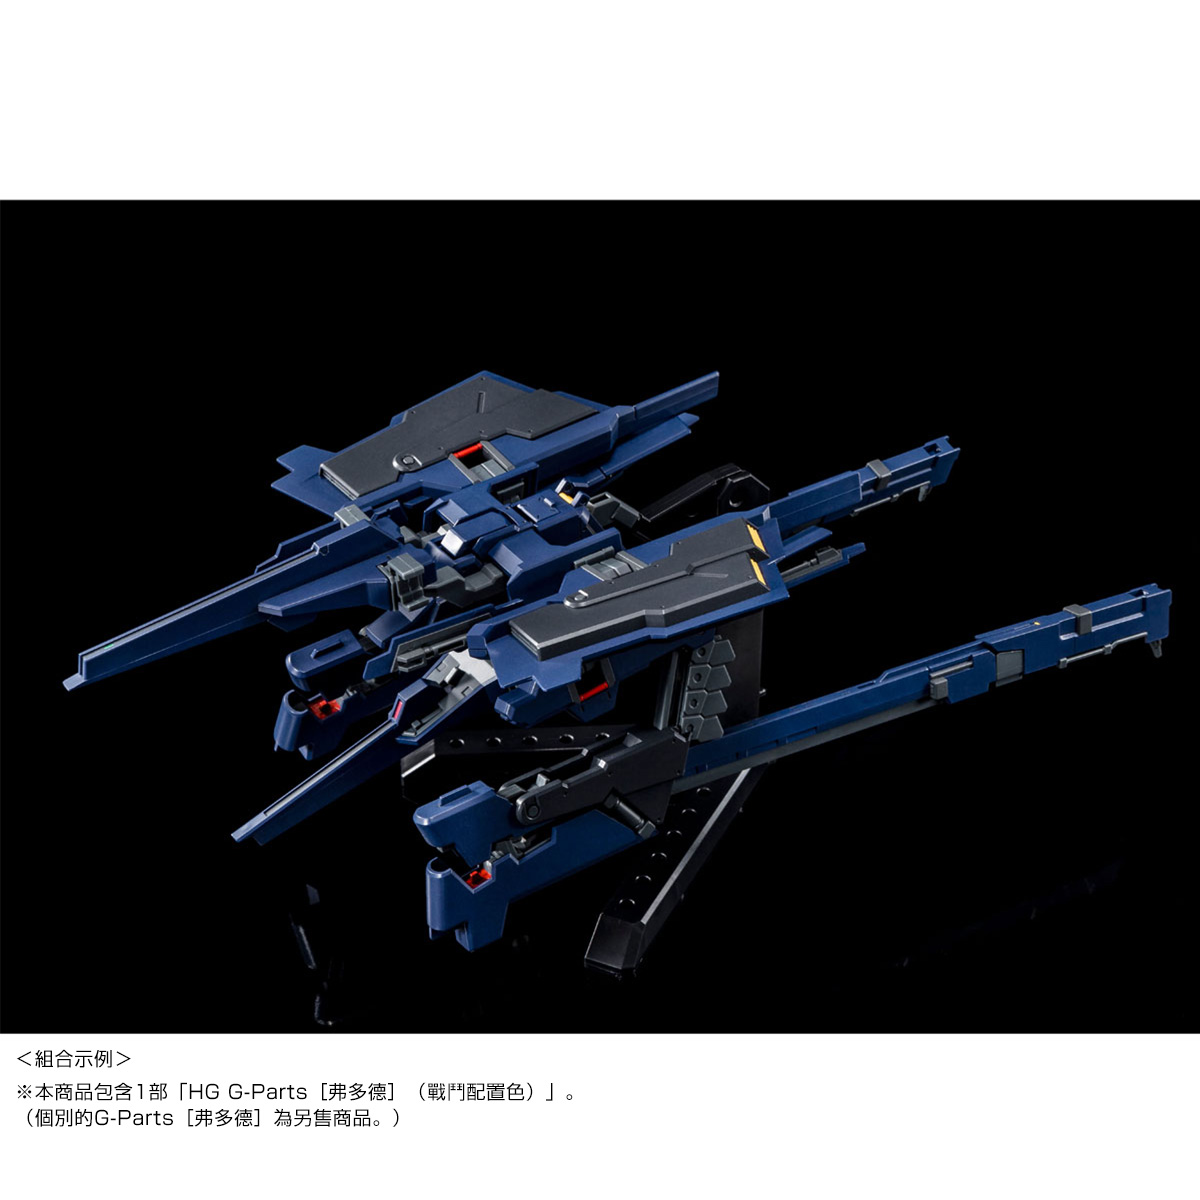 HG 1/144 G-PARTS [HRUDUDU] (COMBAT DEPLOYMENT COLORS) [Jan 2020 Delivery]